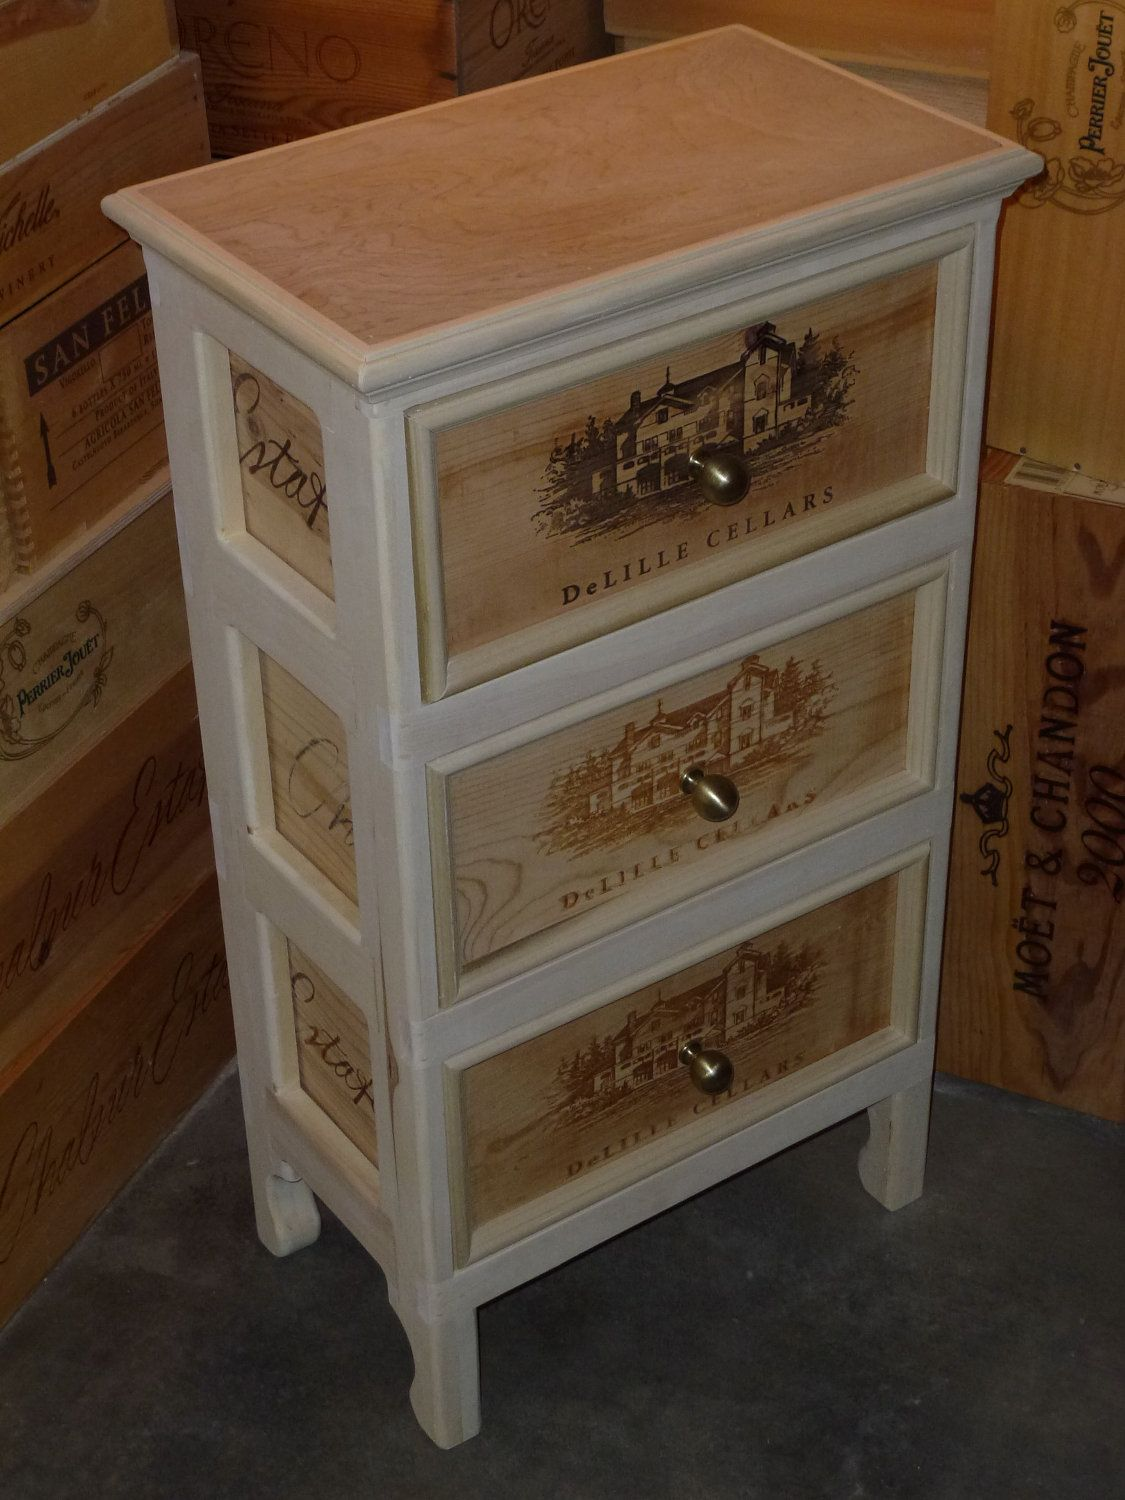 Gorgeous Delille Cellars Three Drawer Wine Crate End Table